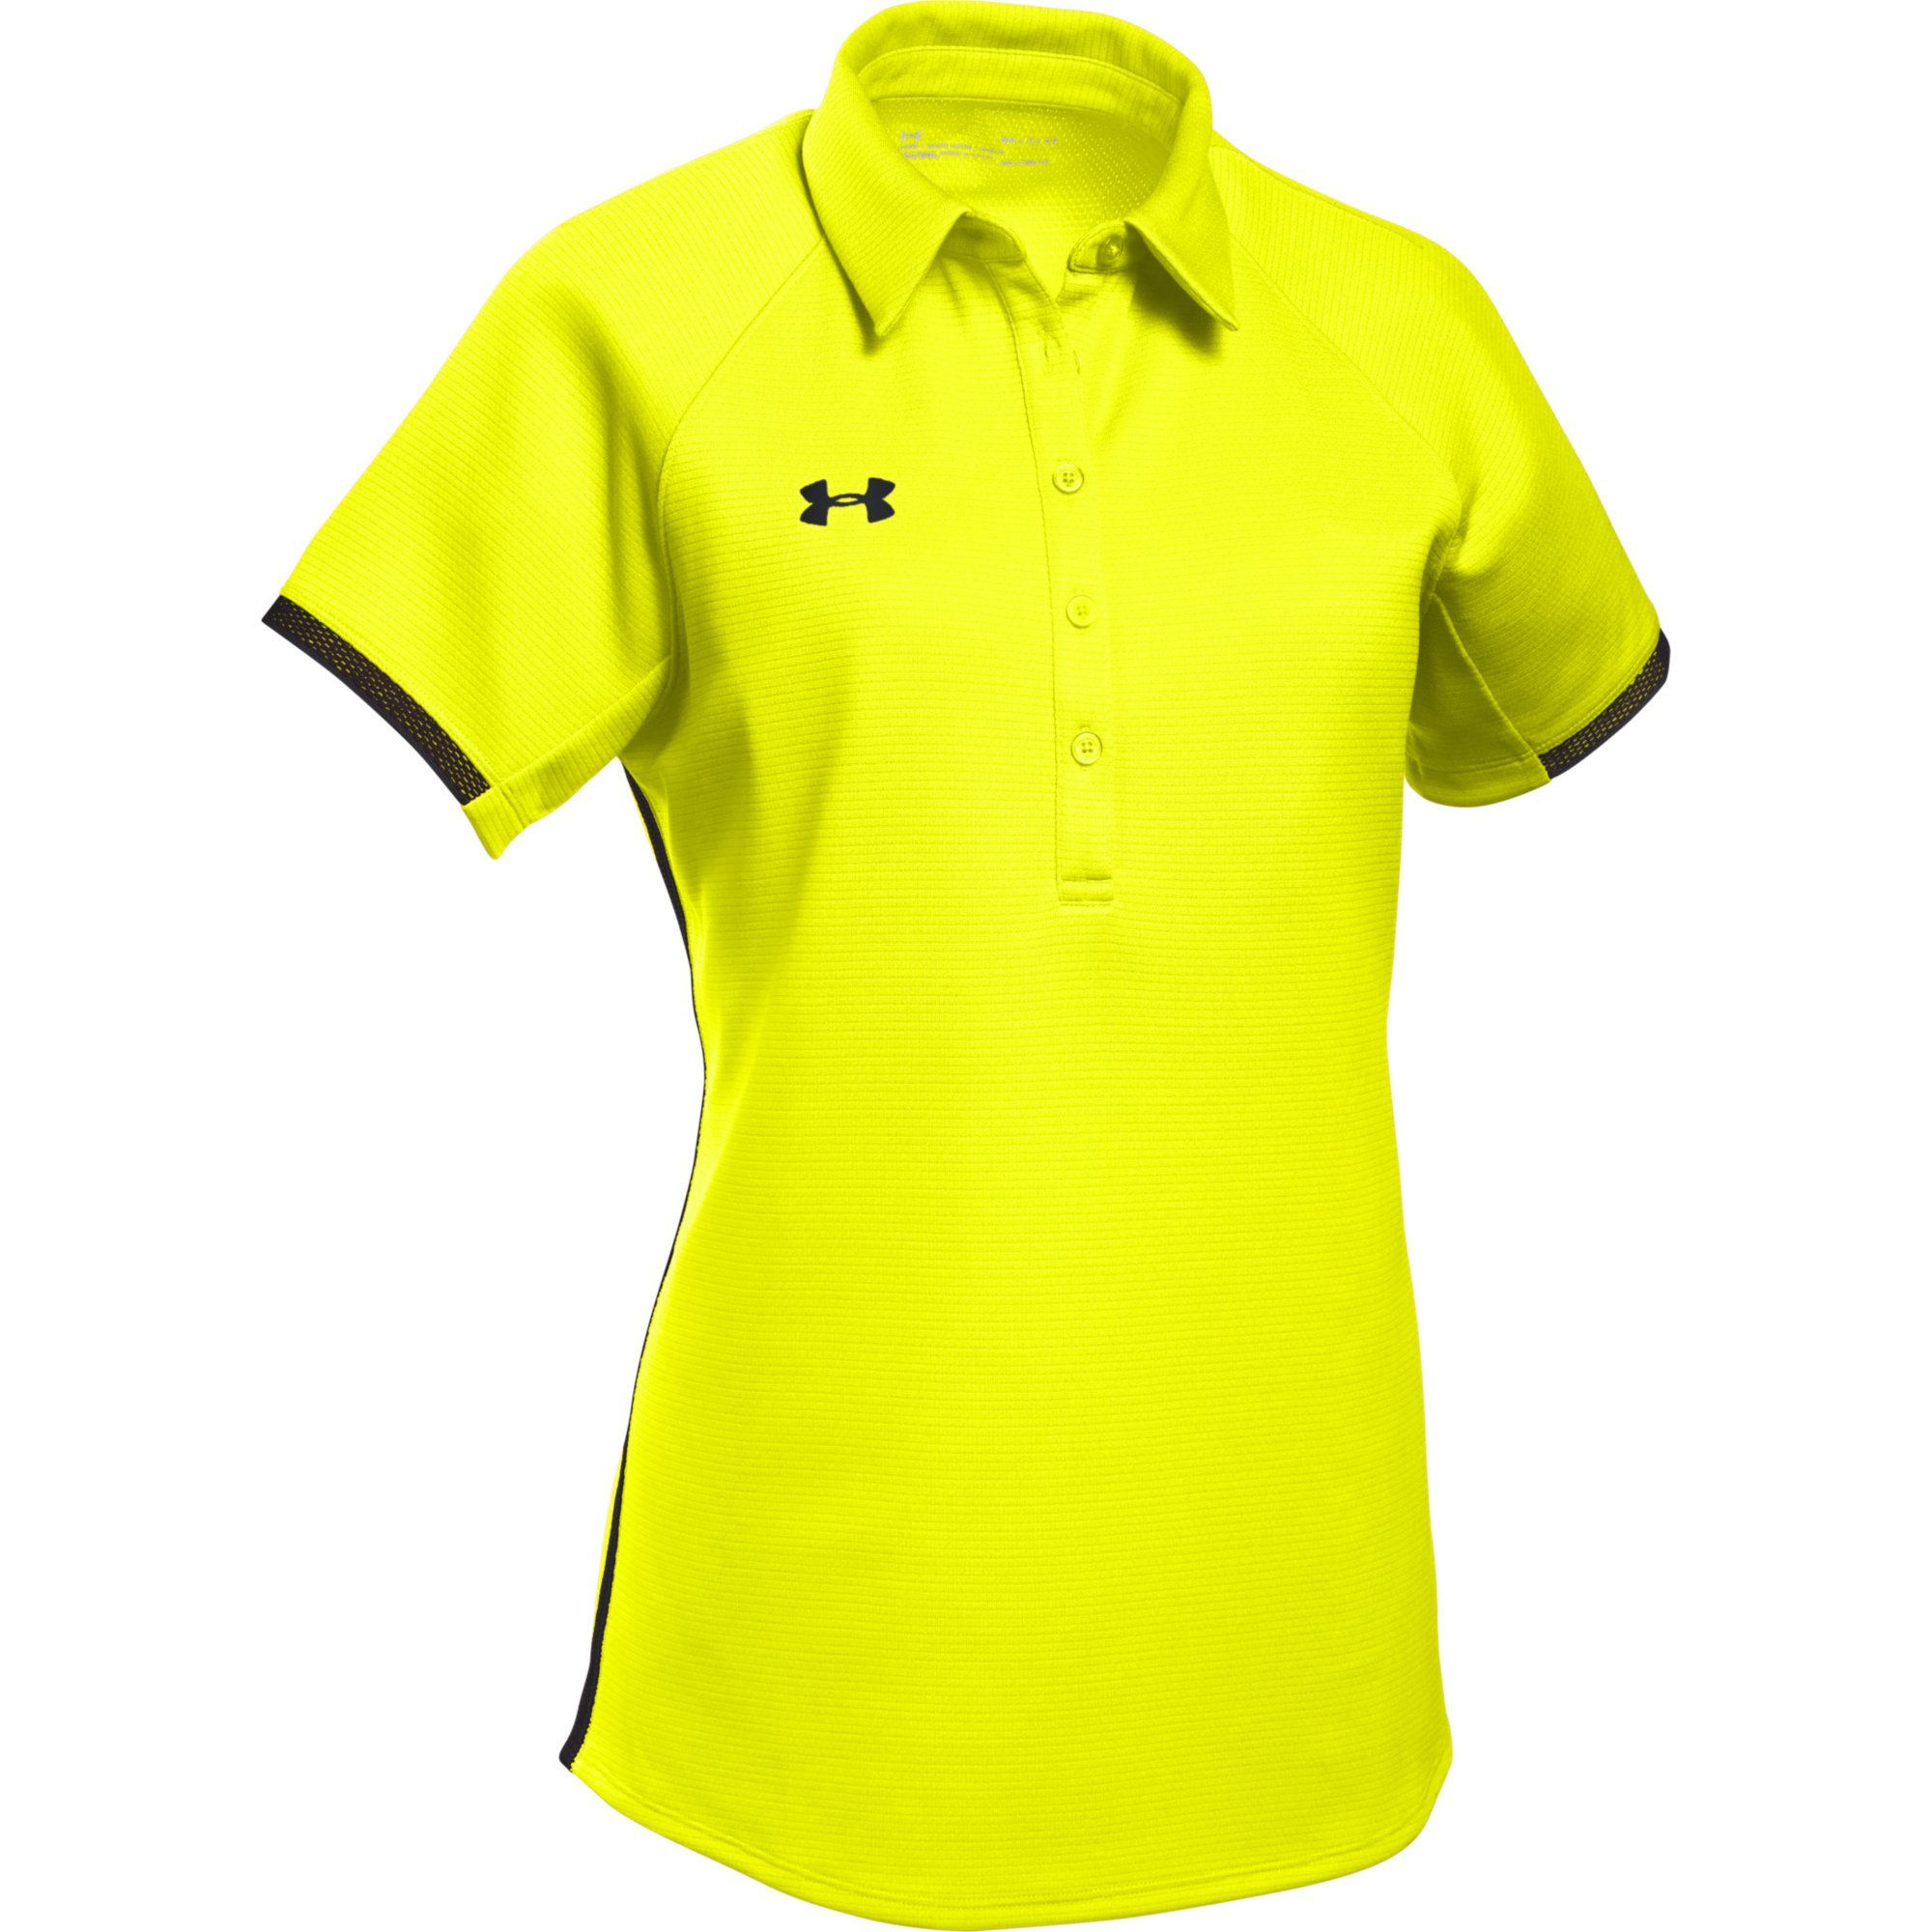 Under Armour Women's UA Rival Polo (X-Large, High-Vis Yellow-Black) by Under Armour